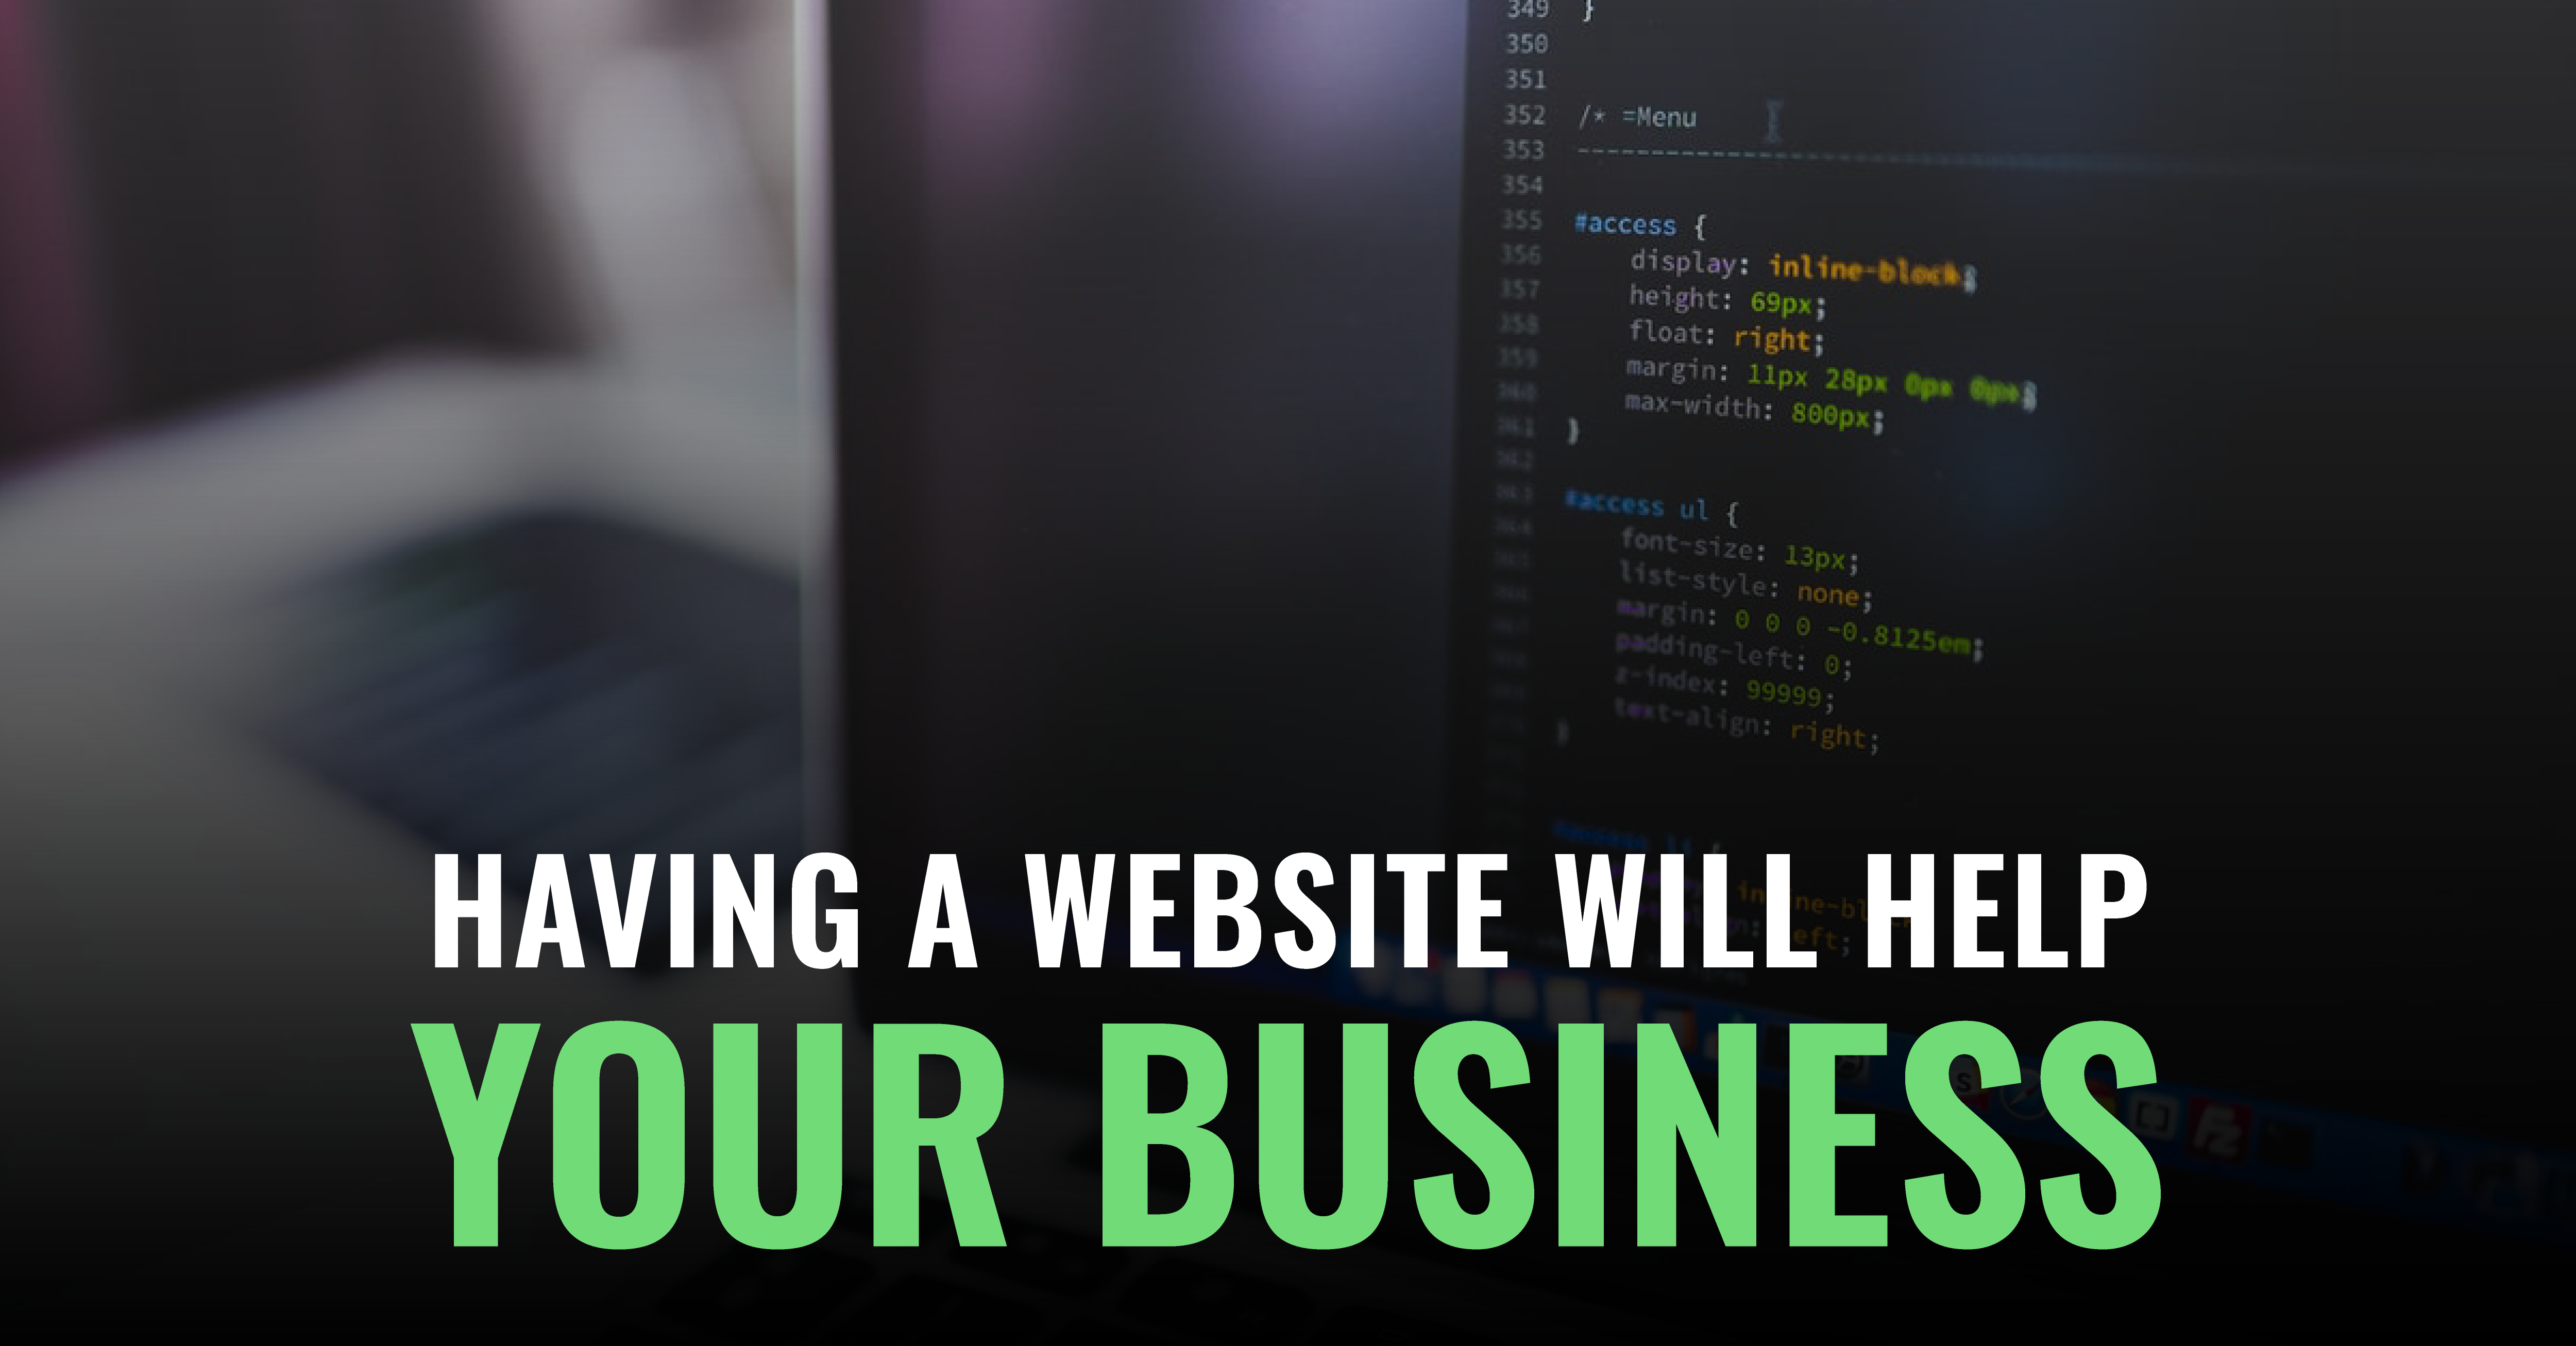 How Having A Website Will Help Your Business